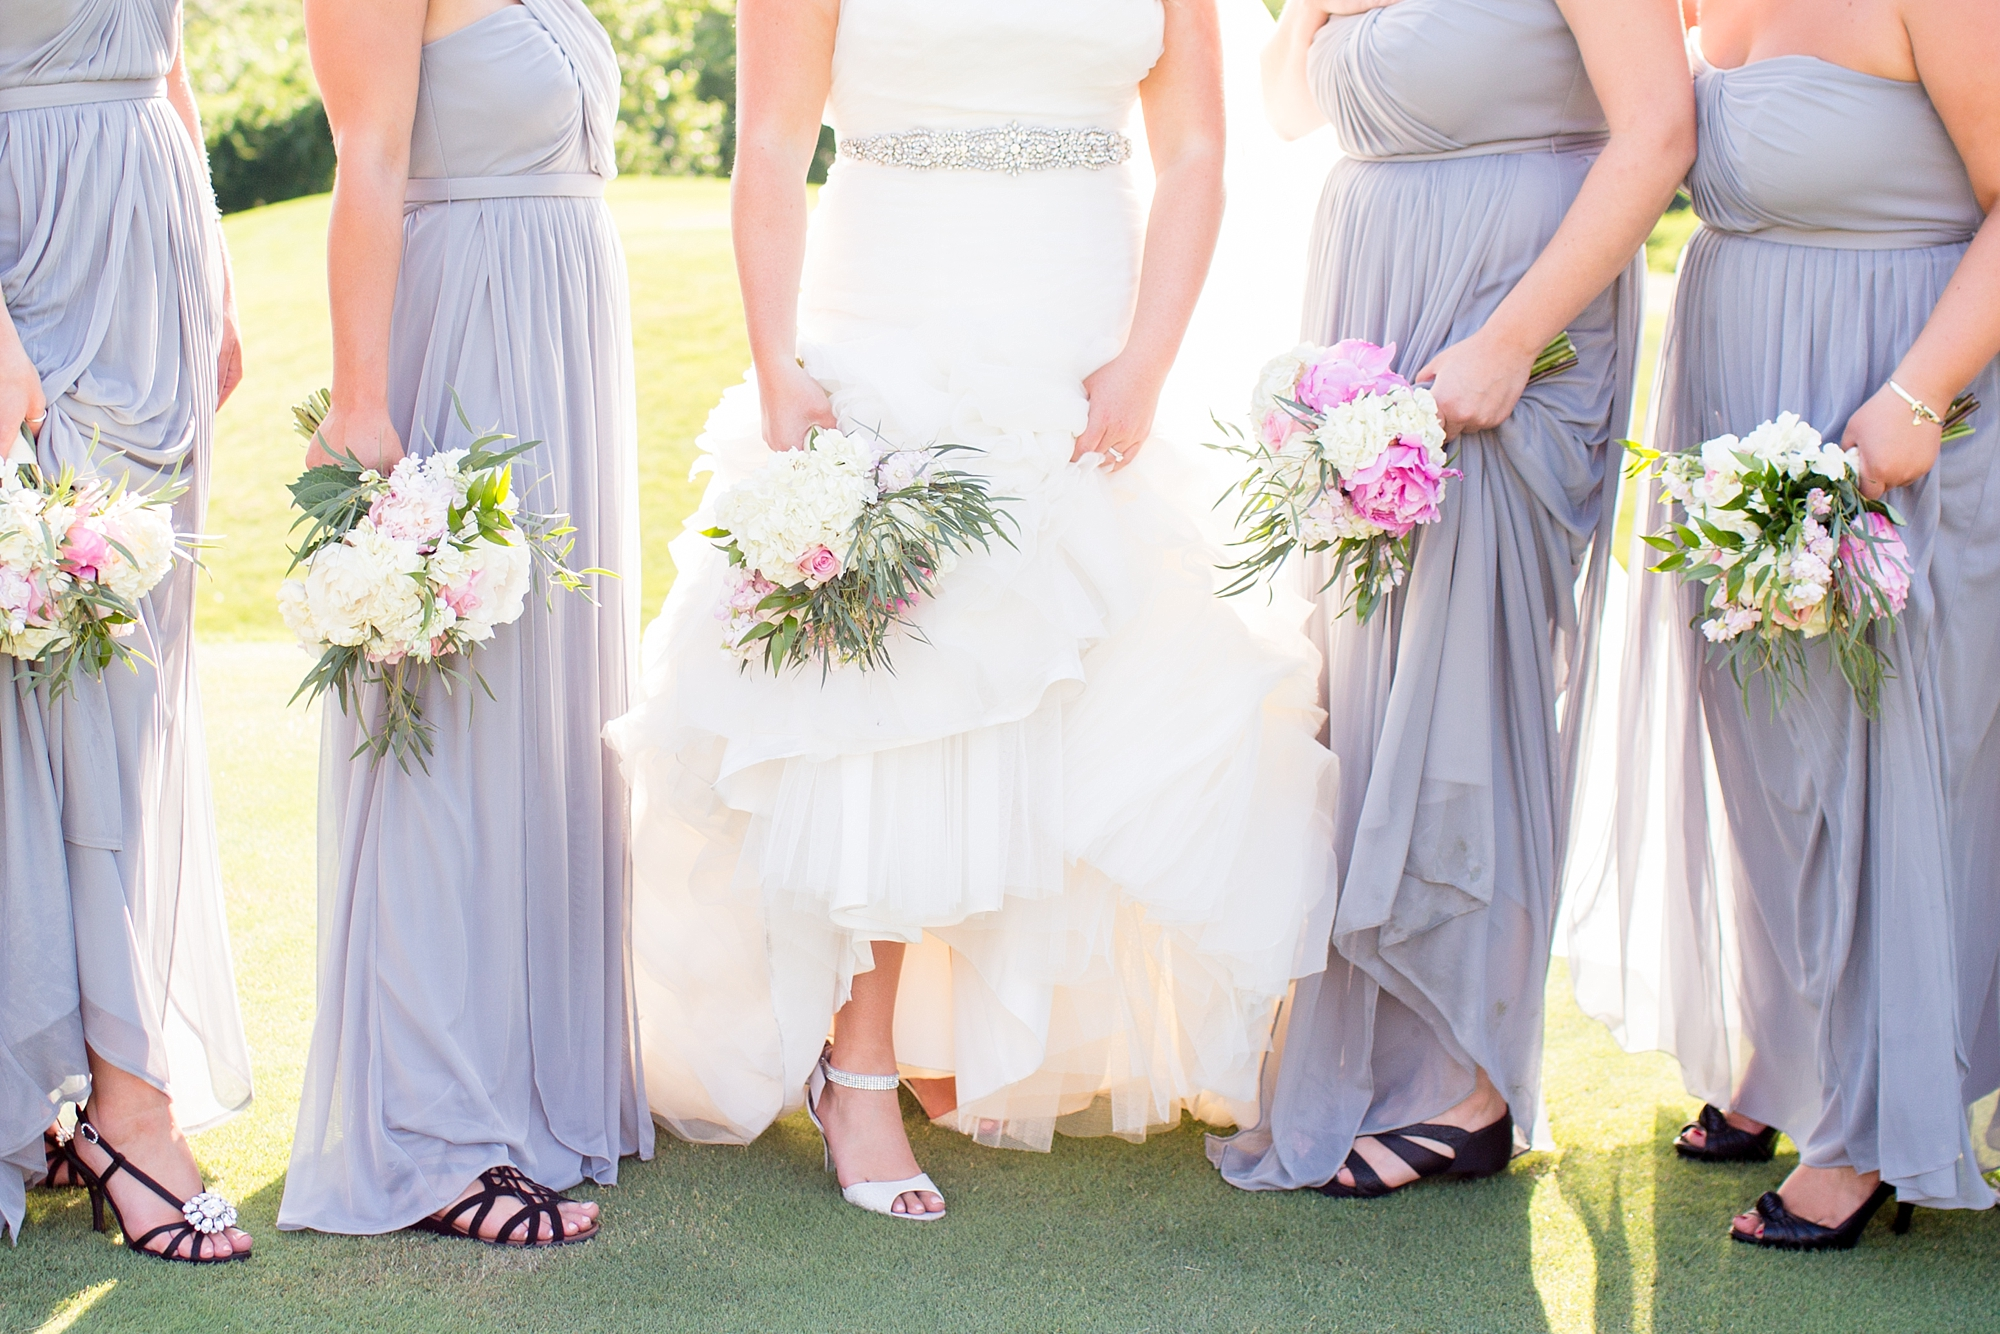 Peterson 4-Bridal Party-629_anna grace photography milford connecticut destination wedding photographer Great River Country Club photo.jpg